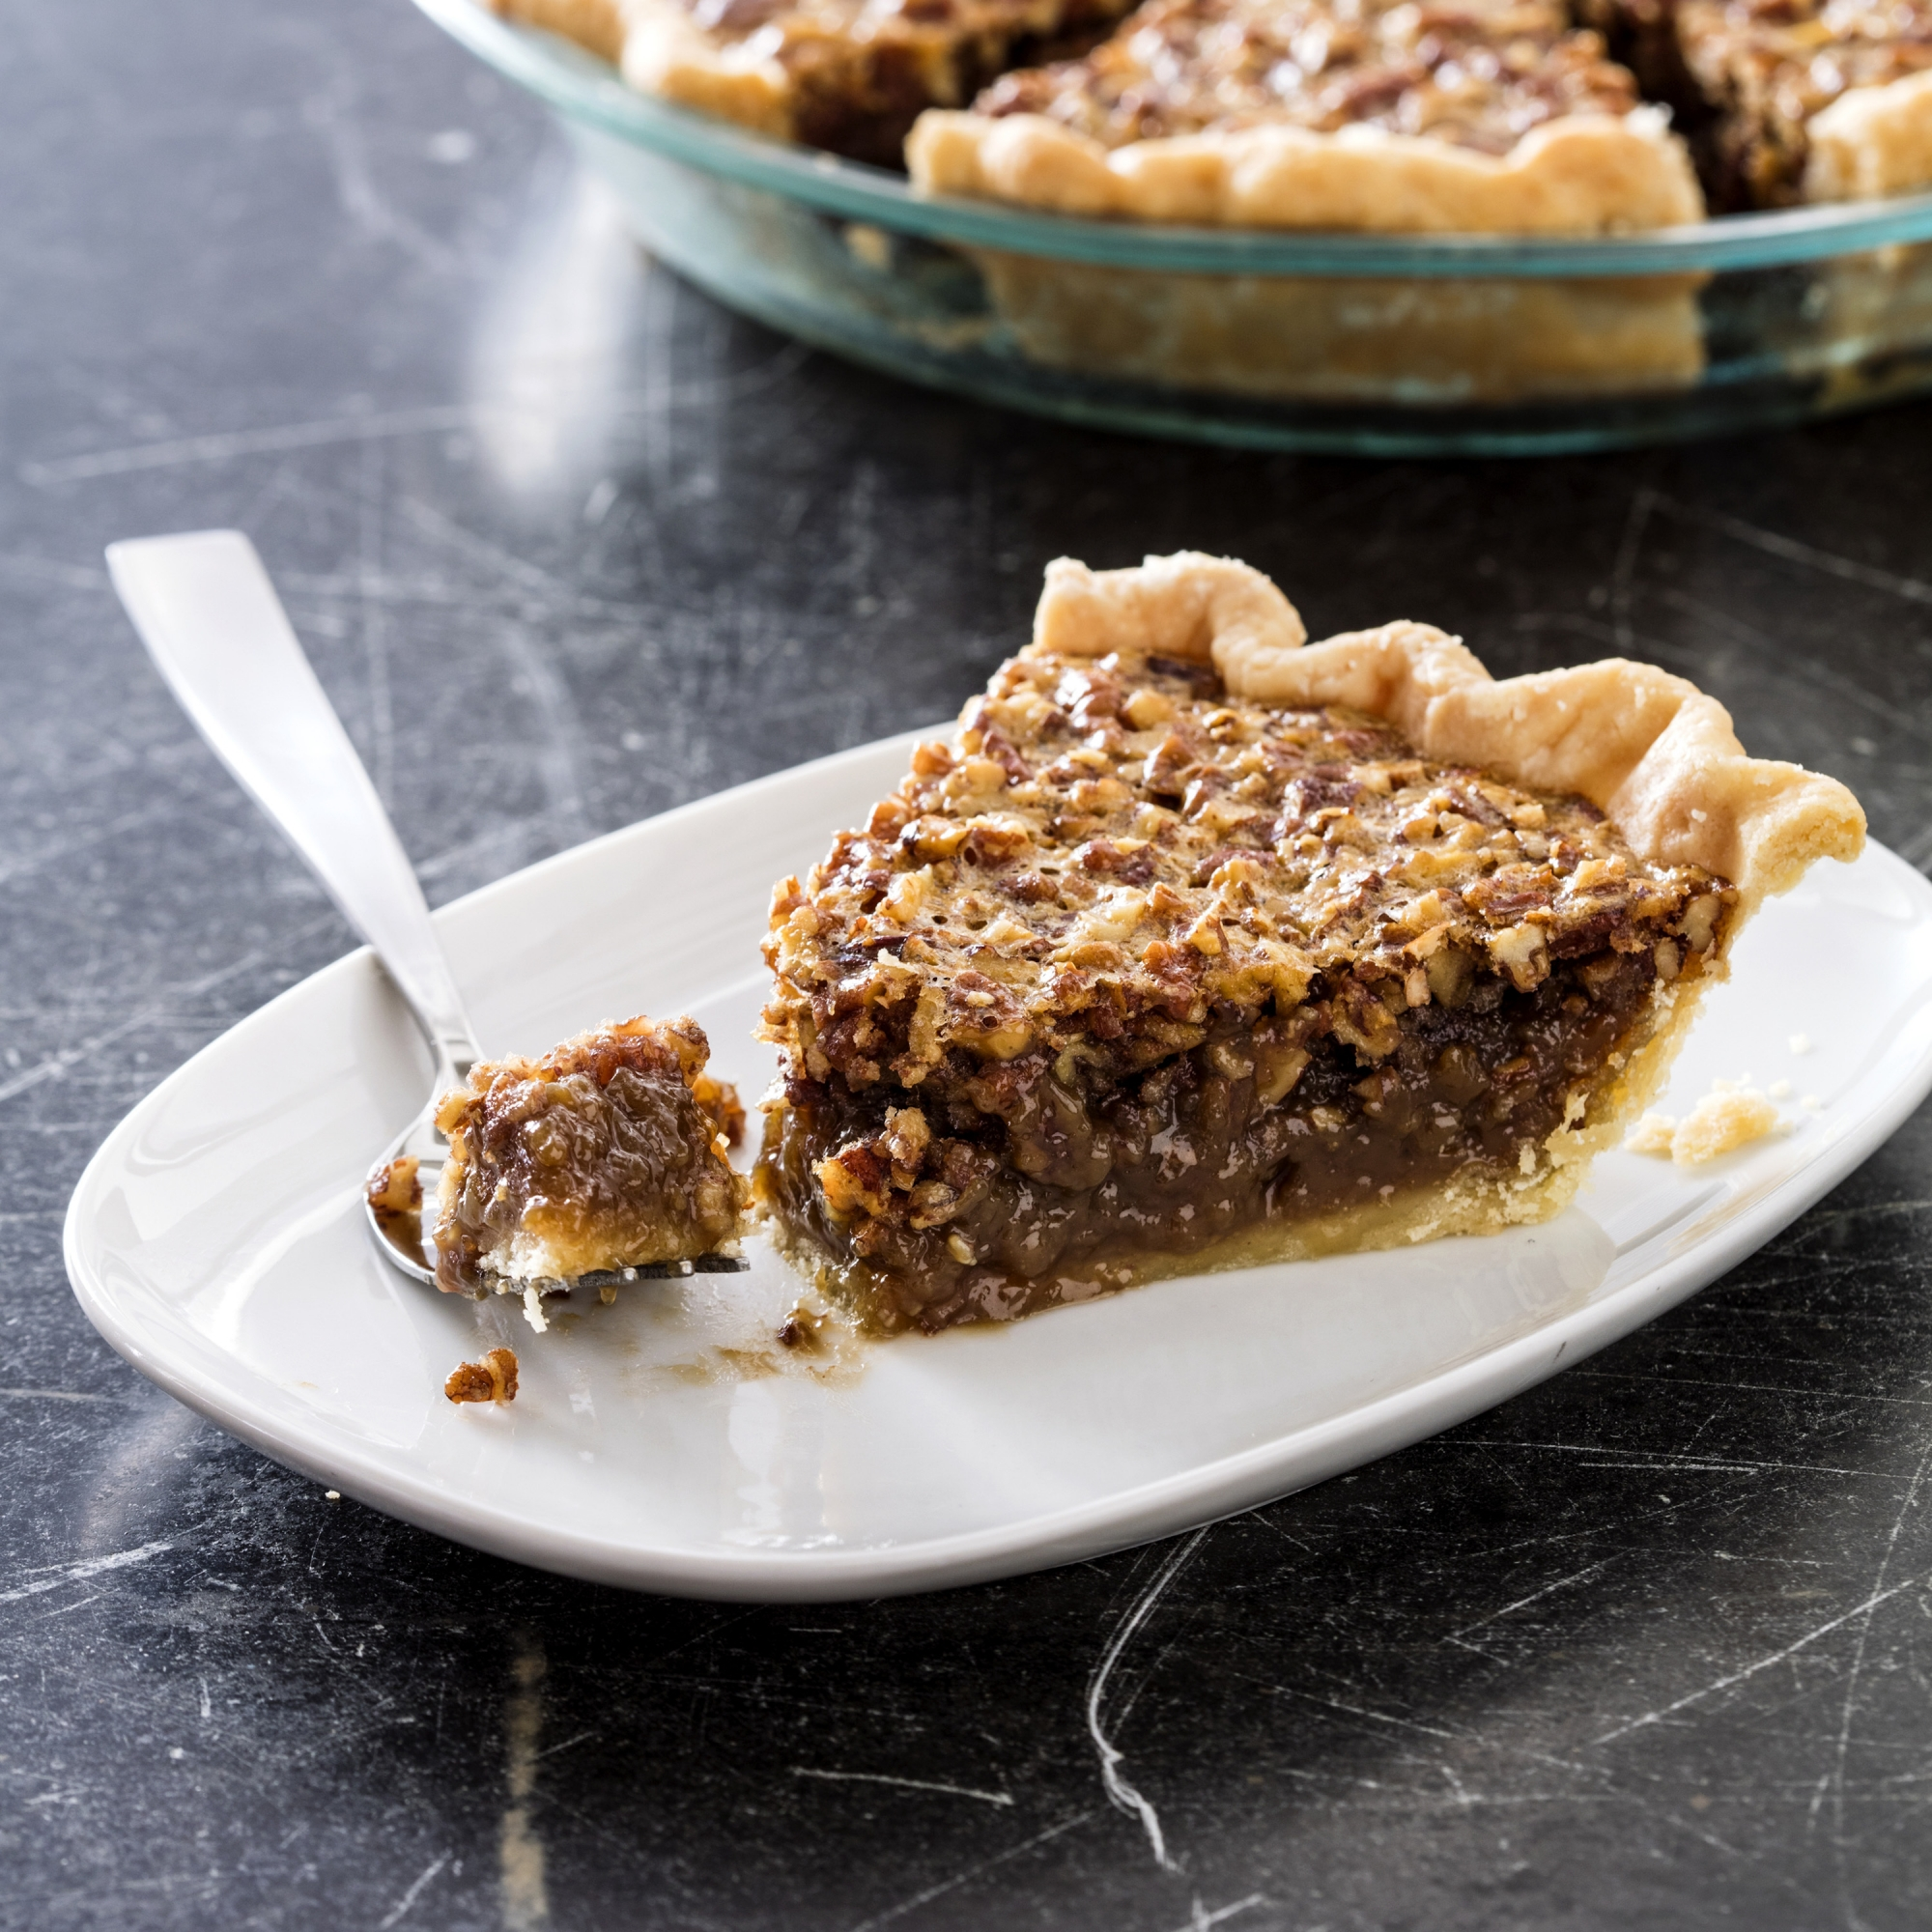 Pecan pie with a smooth-textured filling and a nice crust | WTOP